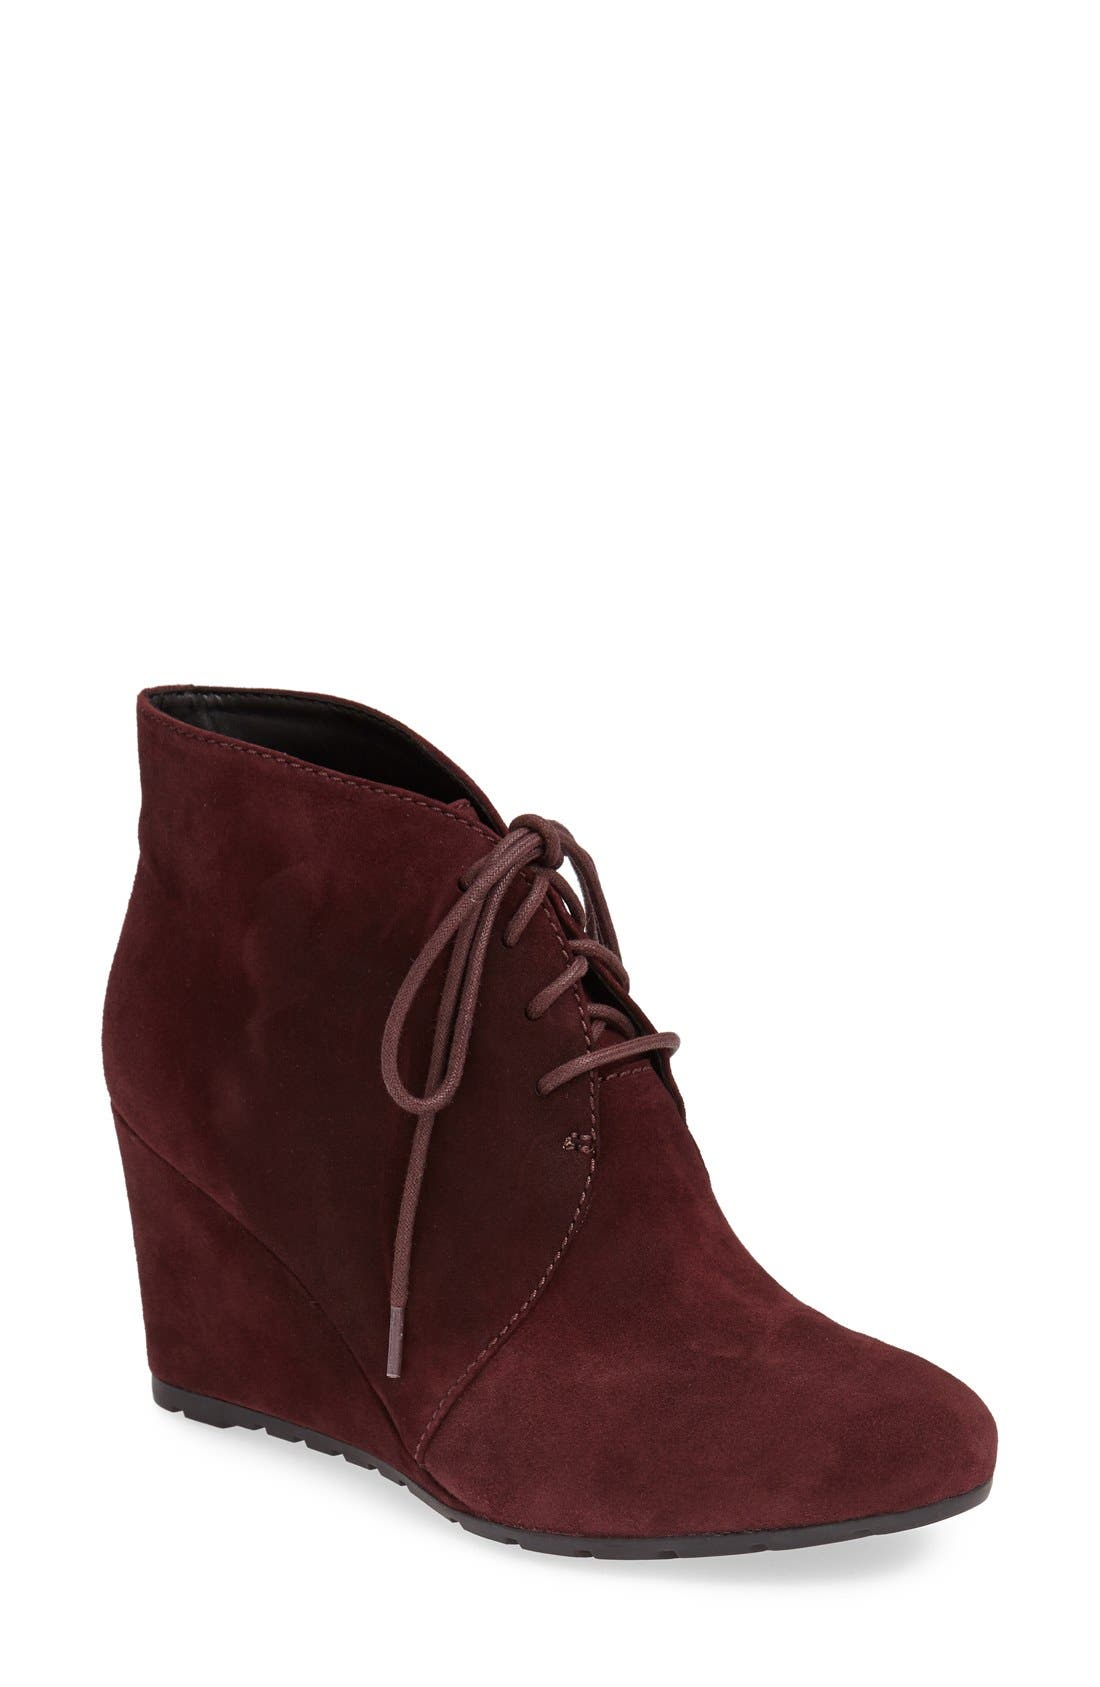 Alternate Image 1 Selected - Clarks® 'Rosepoint Dew' Suede Boot (Women)